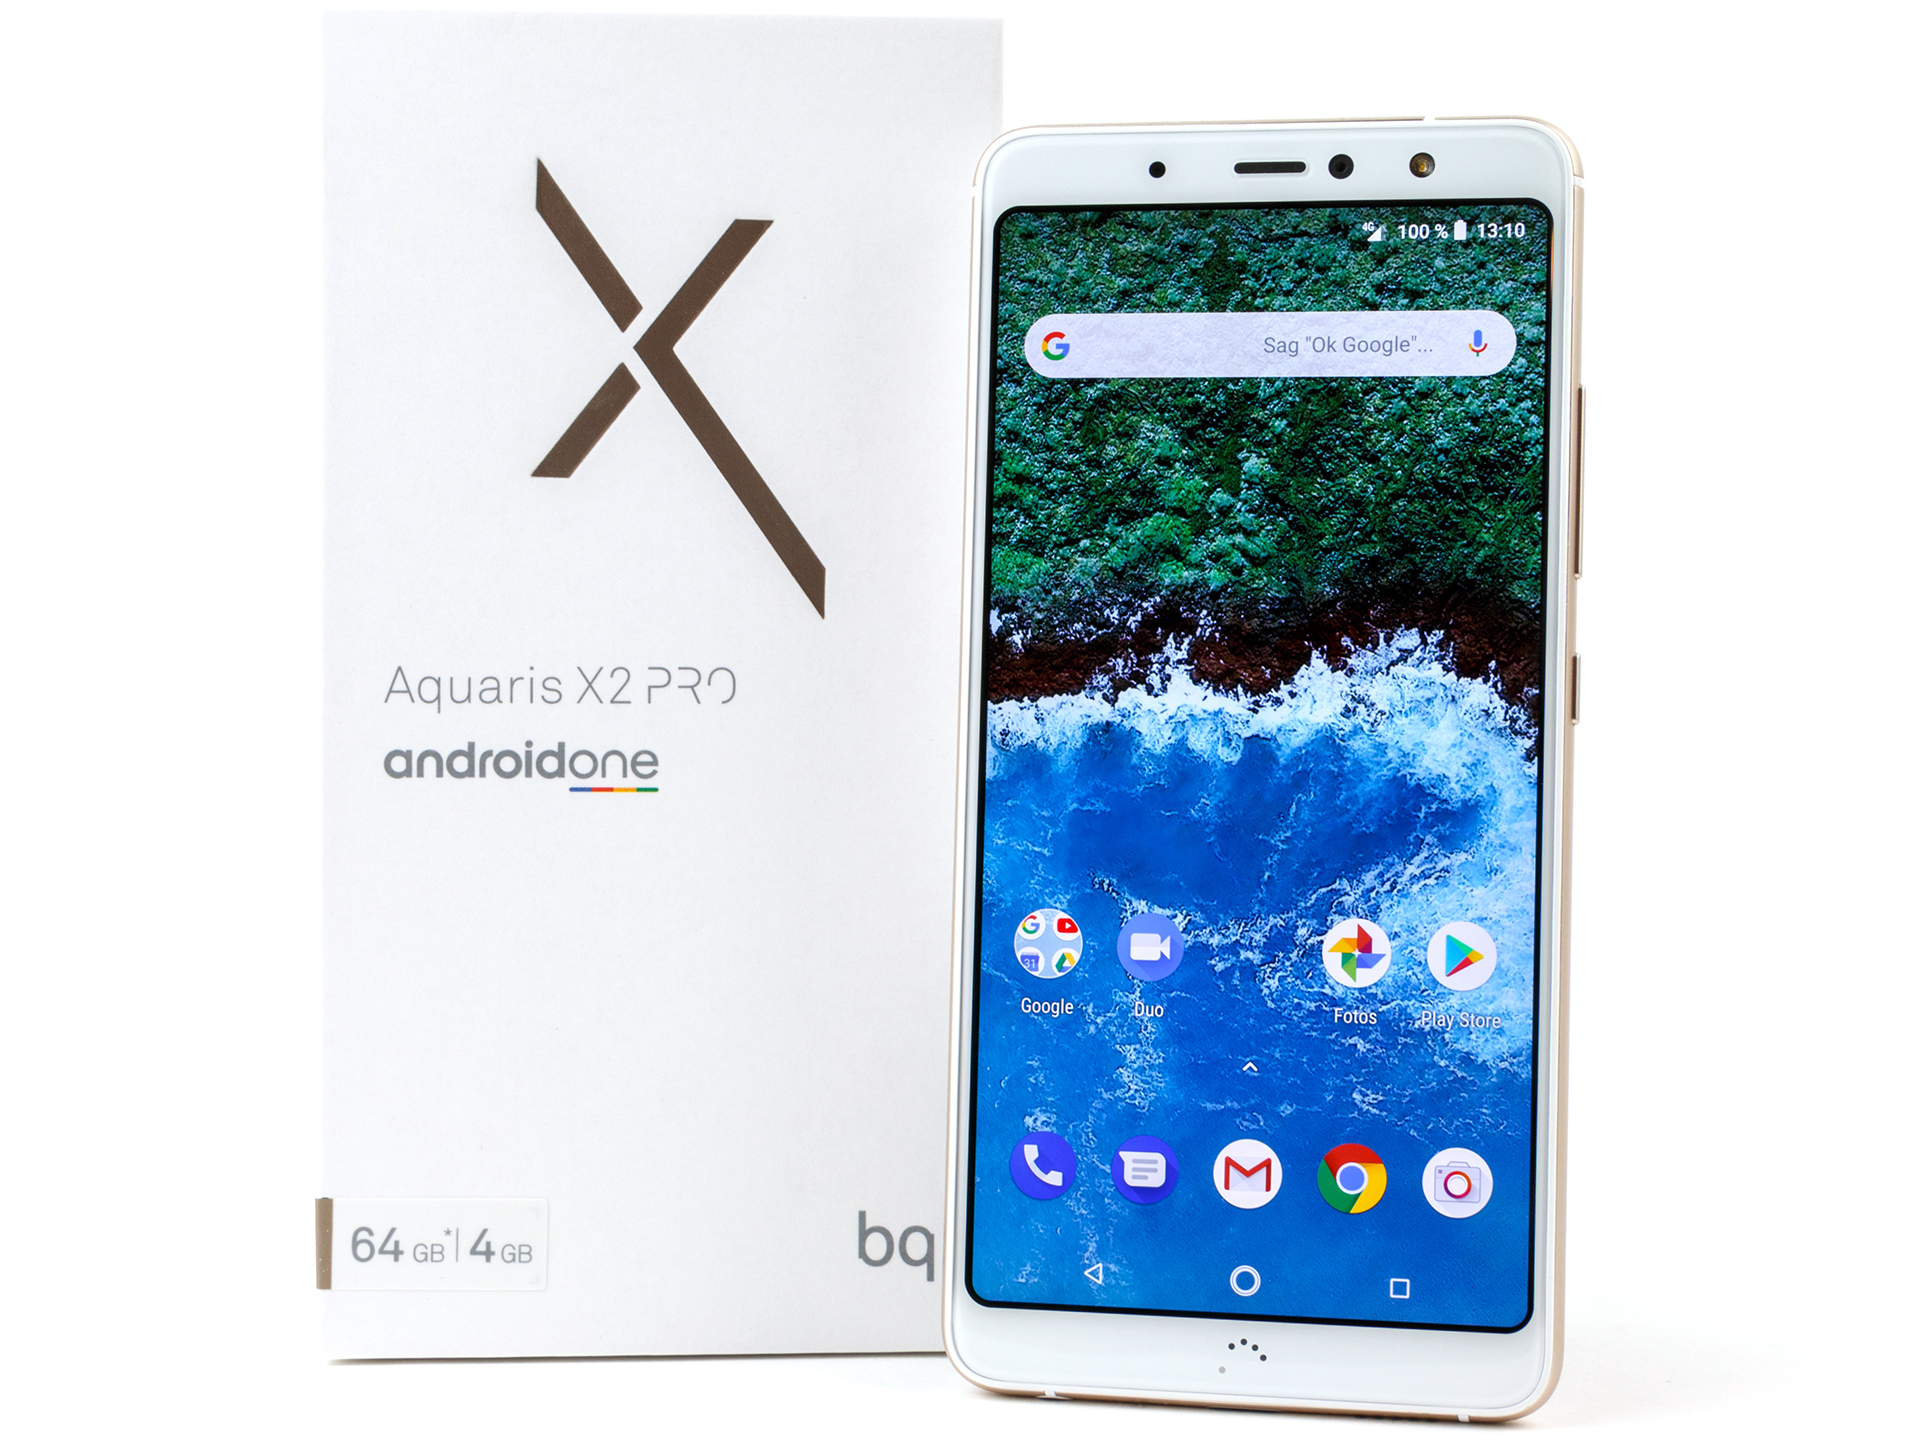 BQ Aquaris X2 Pro Smartphone Review - NotebookCheck net Reviews